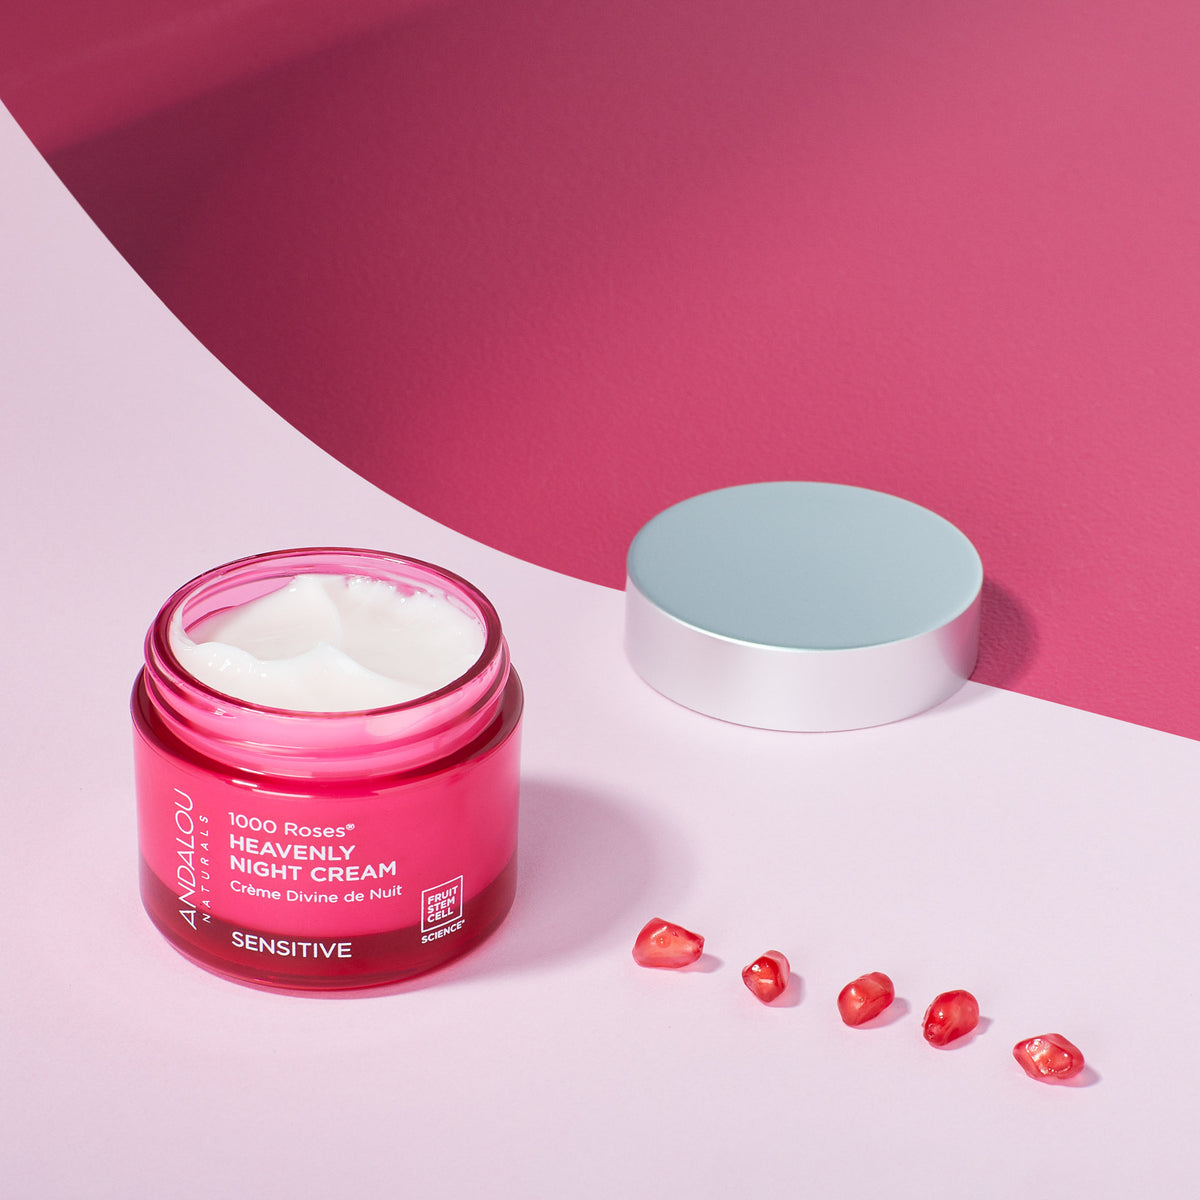 Sensitive 1000 Roses Heavenly Night Cream